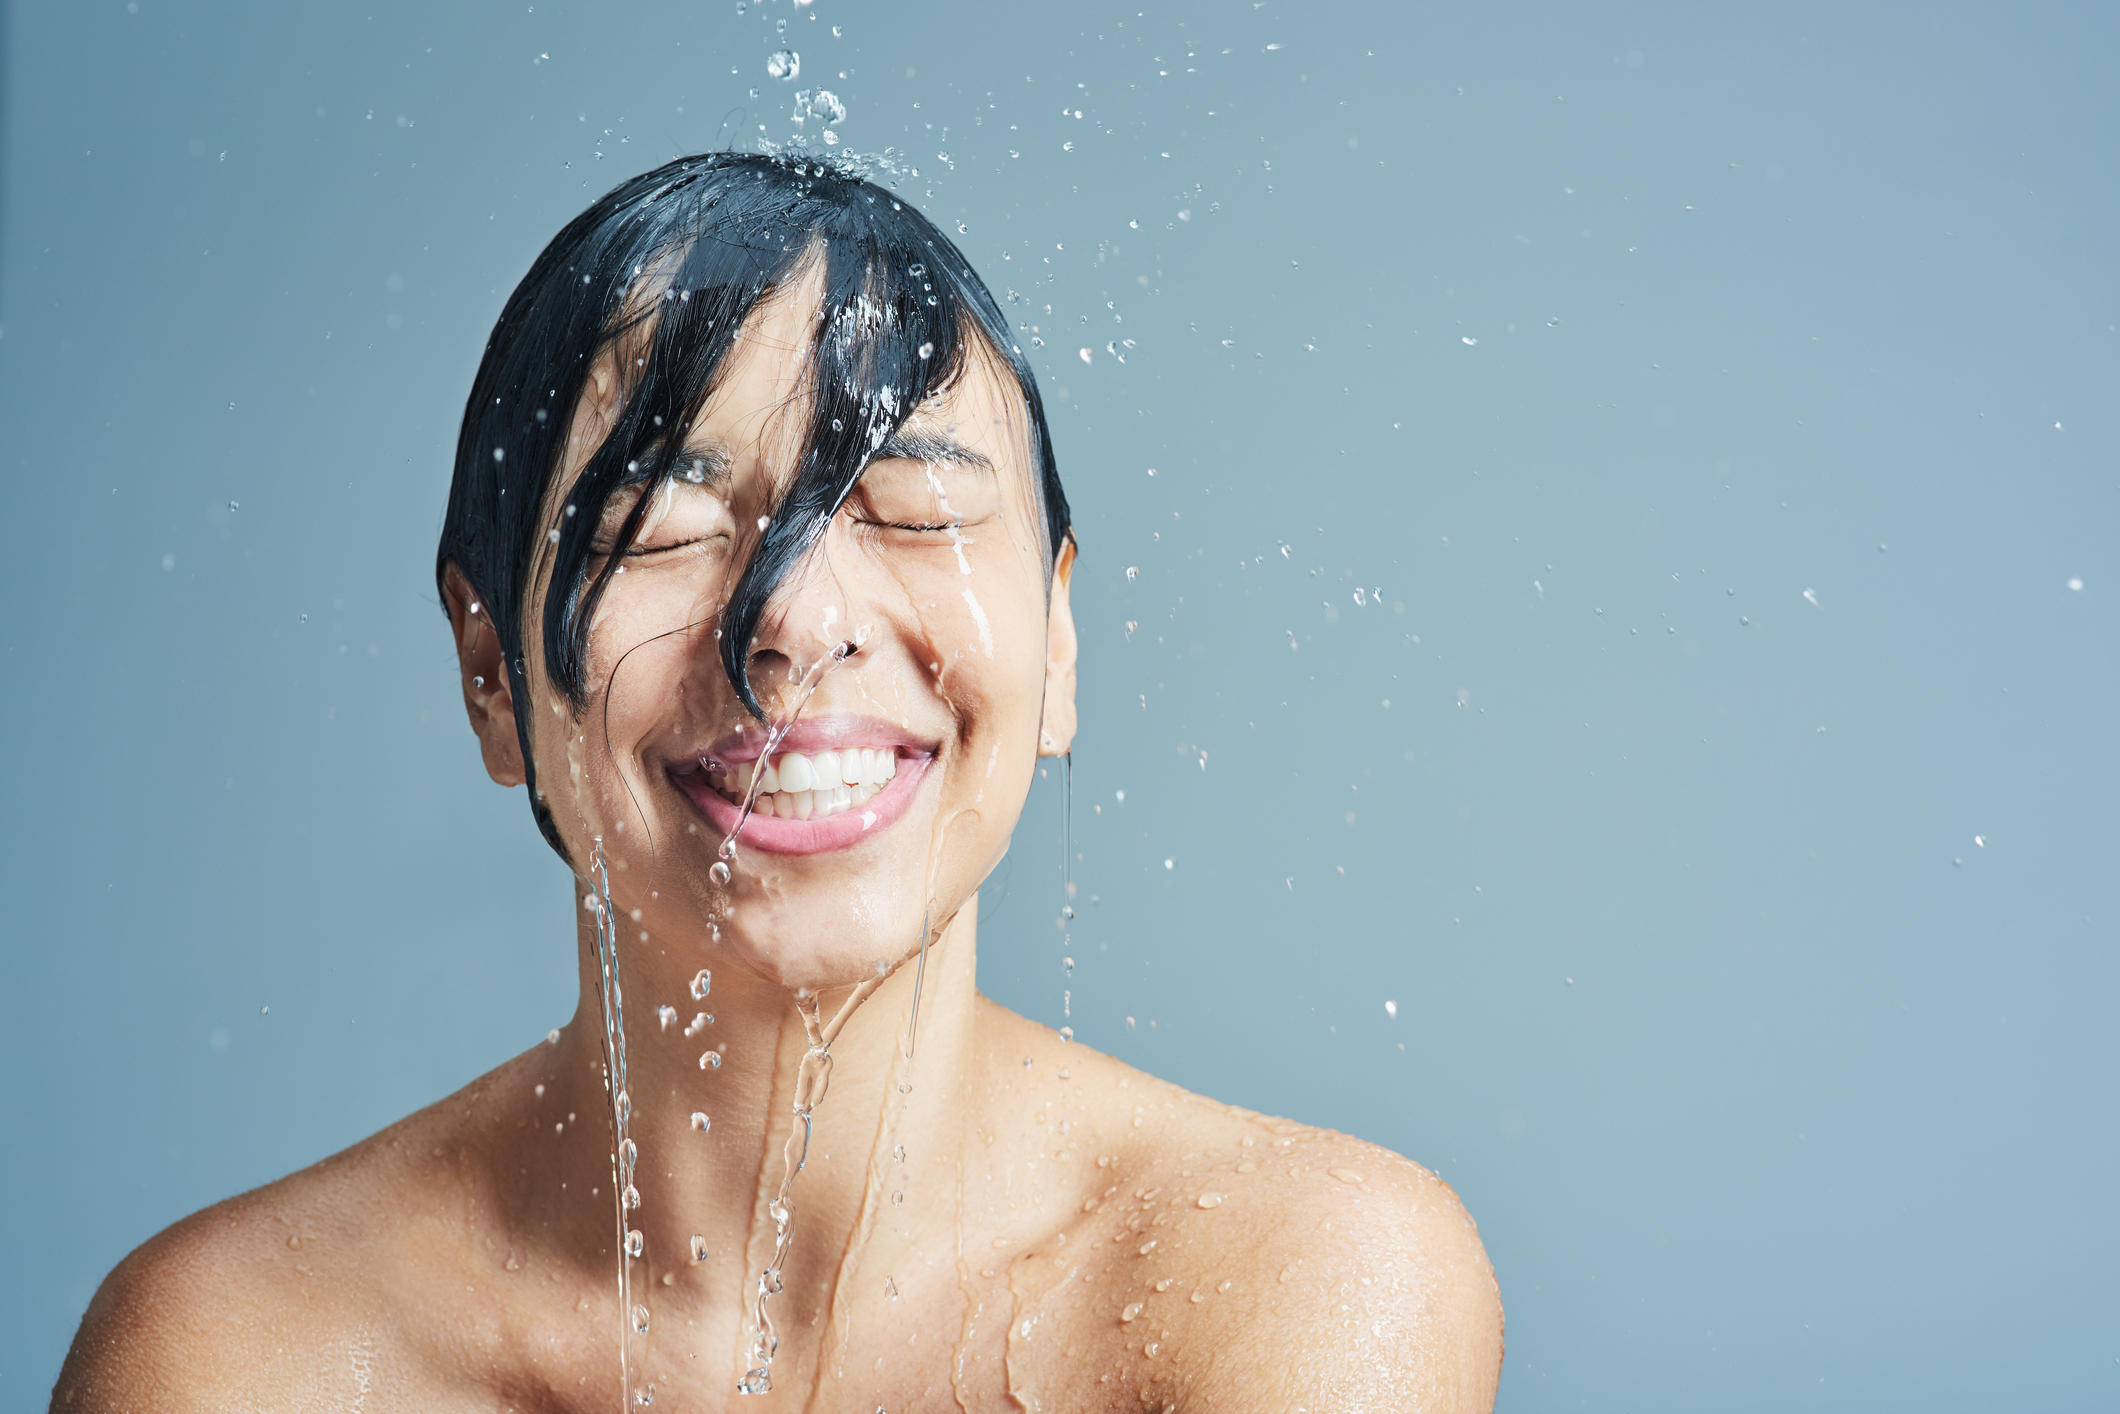 Shot of a young woman having a refreshing shower against a blue background